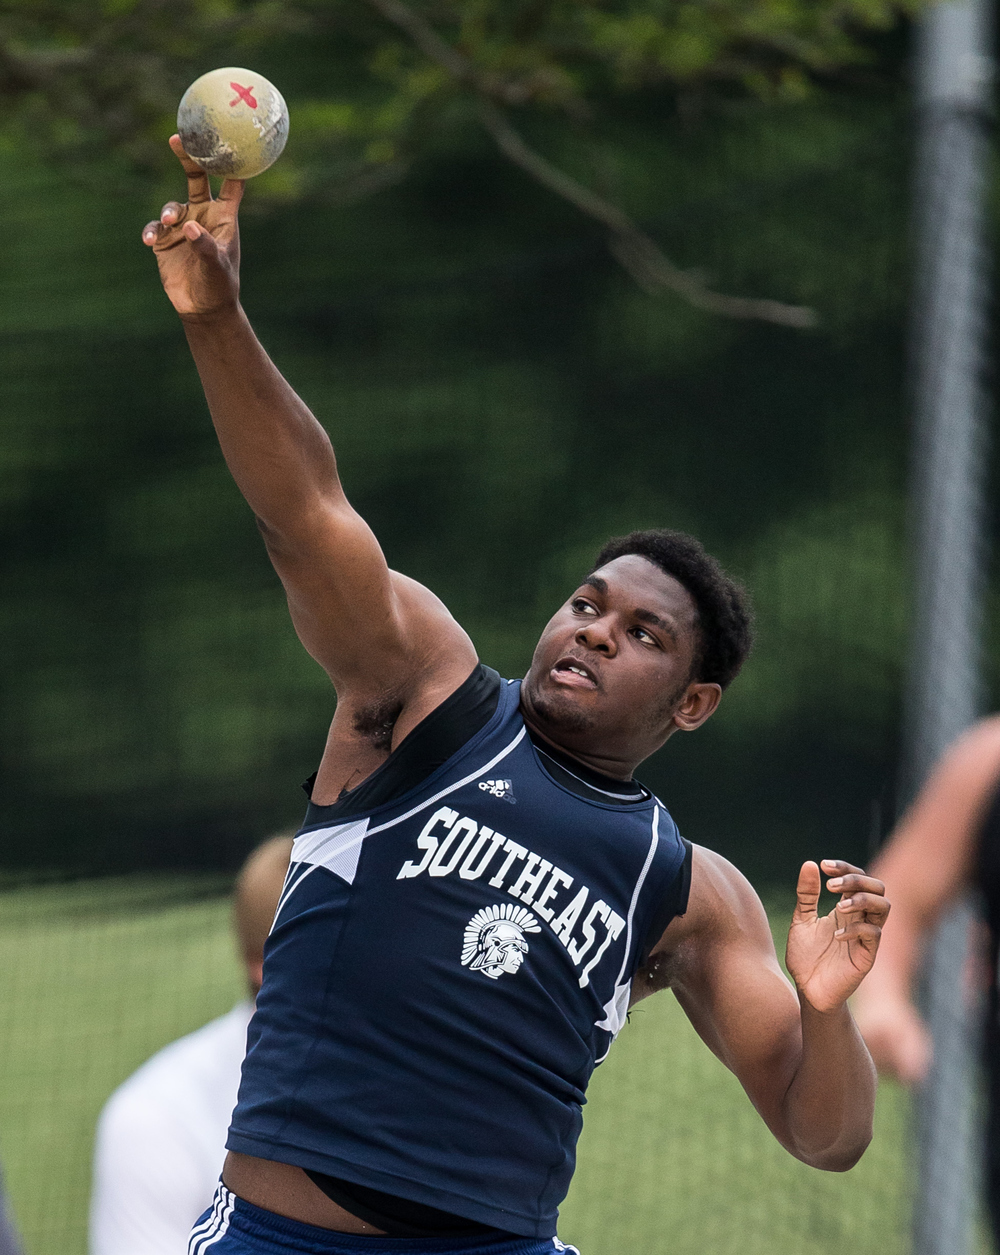 Springfield Southeast's Wlatee Weah competes in the Class 2A Shot Put during the IHSA Boys Track and Field State Finals at O'Brien Stadium, Saturday, May 30, 2015, in Charleston, Ill. Weah finished 7th with a best throw of 51-01.75. Justin L. Fowler/The State Journal-Register